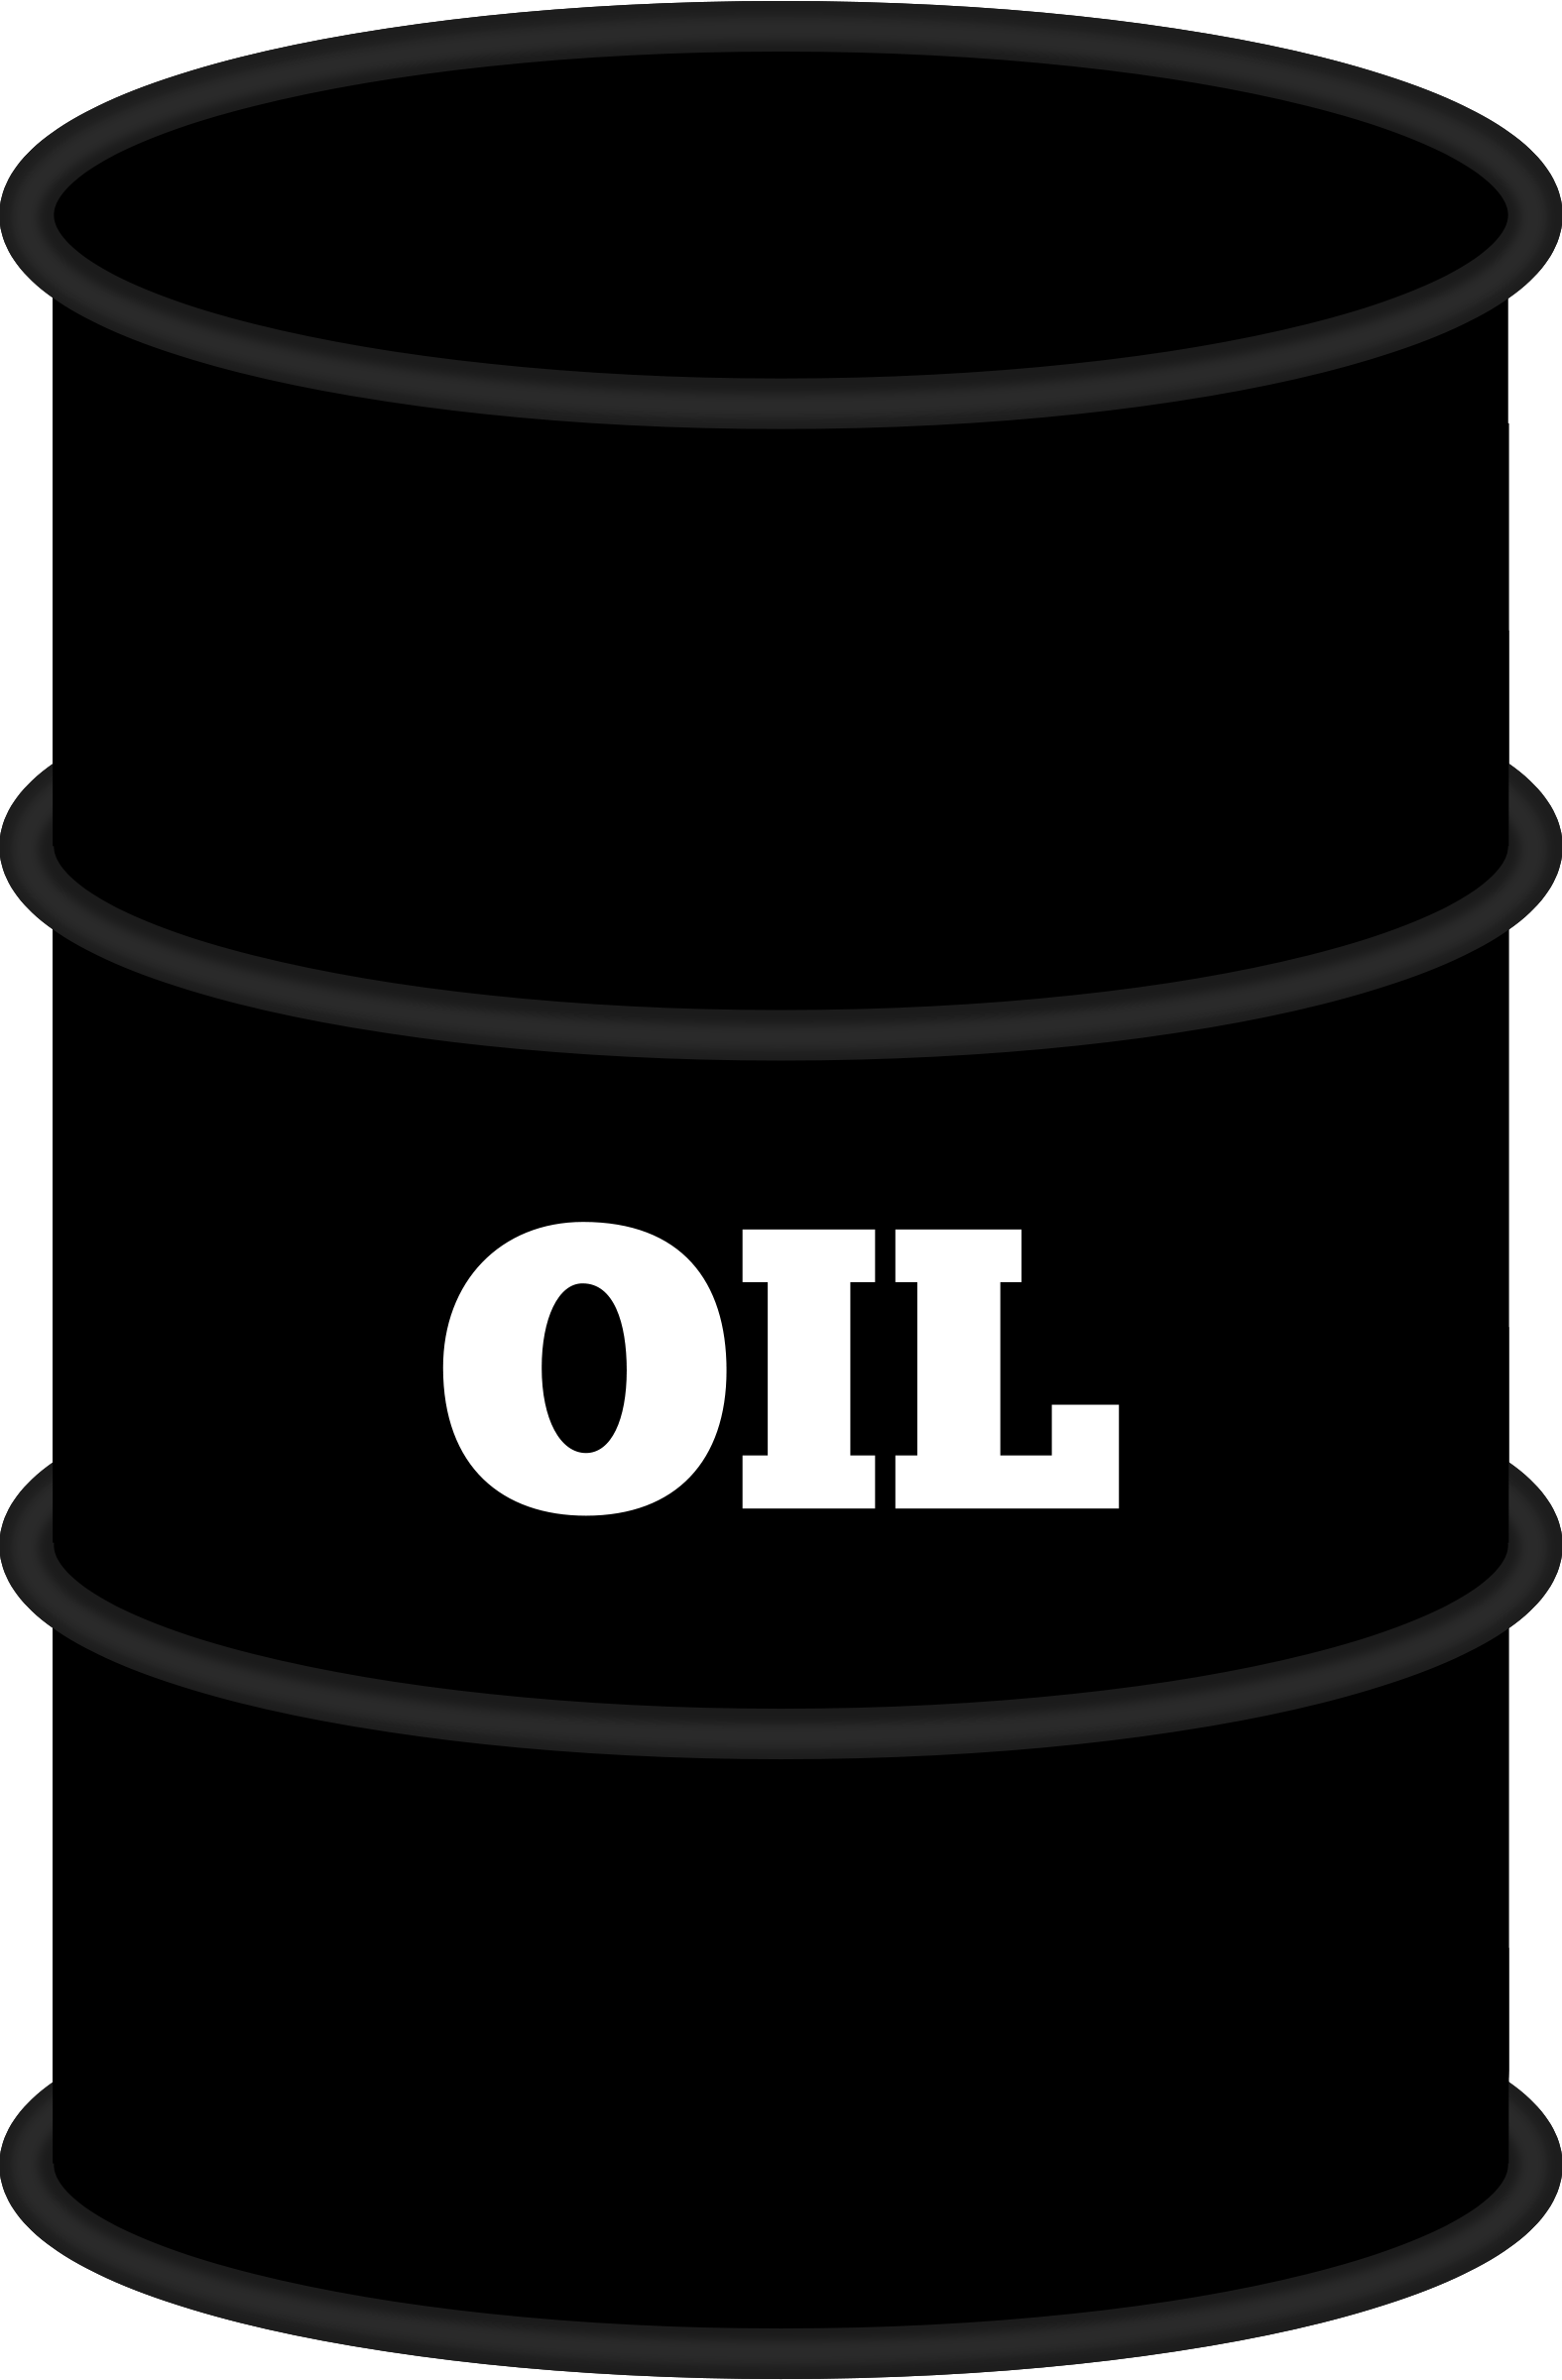 Oil clipart free svg black and white stock Free Oil Cliparts, Download Free Clip Art, Free Clip Art on Clipart ... svg black and white stock